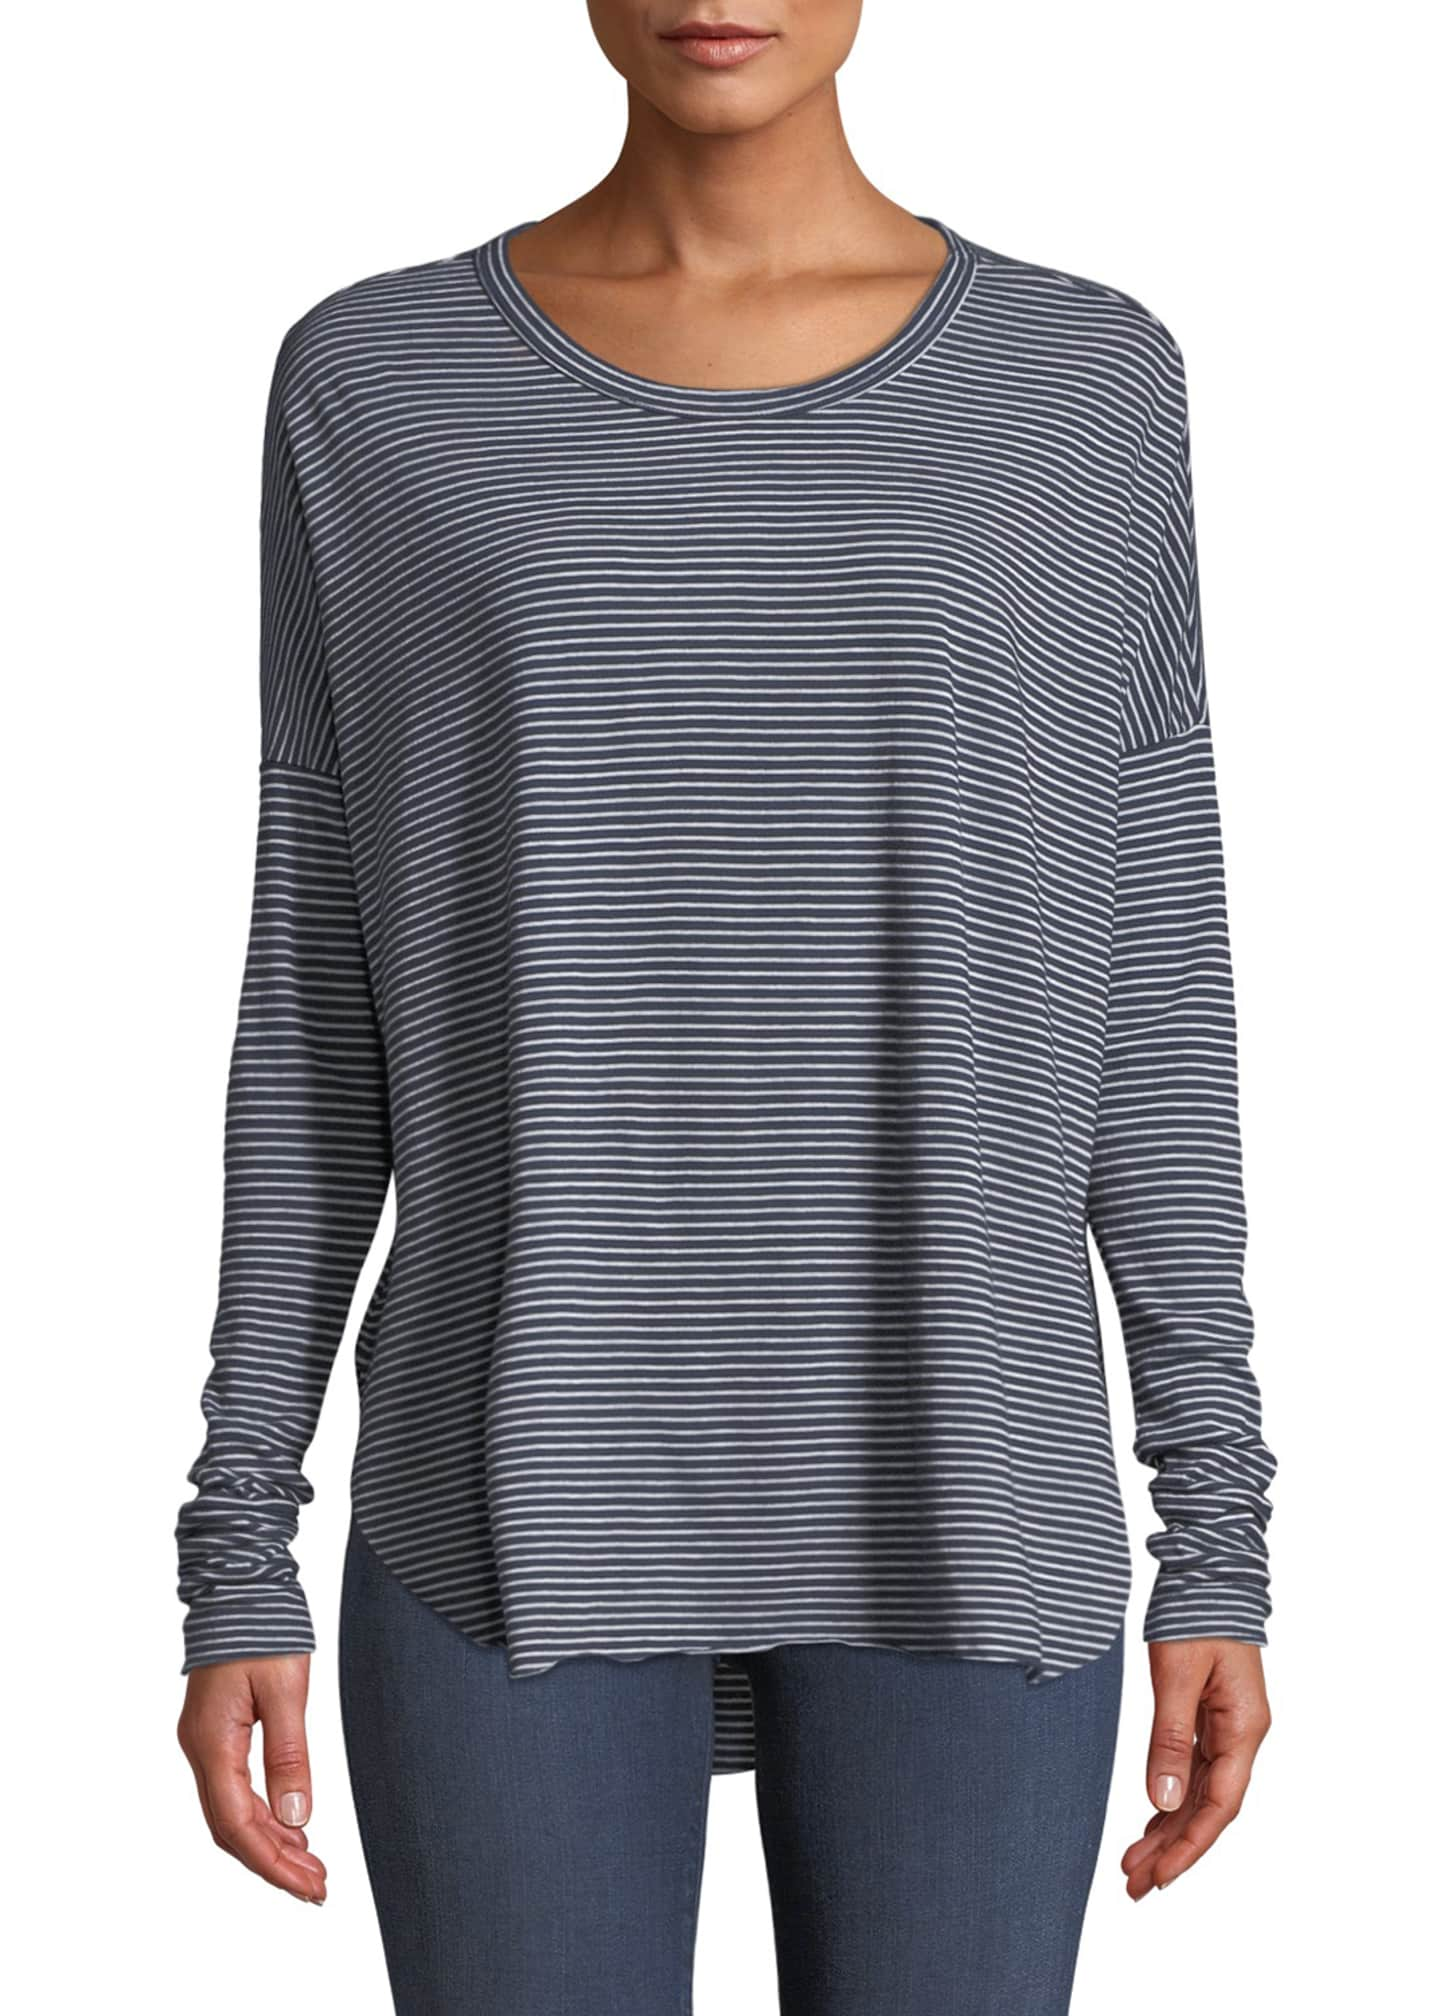 Frank & Eileen Tee Lab Relaxed Striped Long-Sleeve